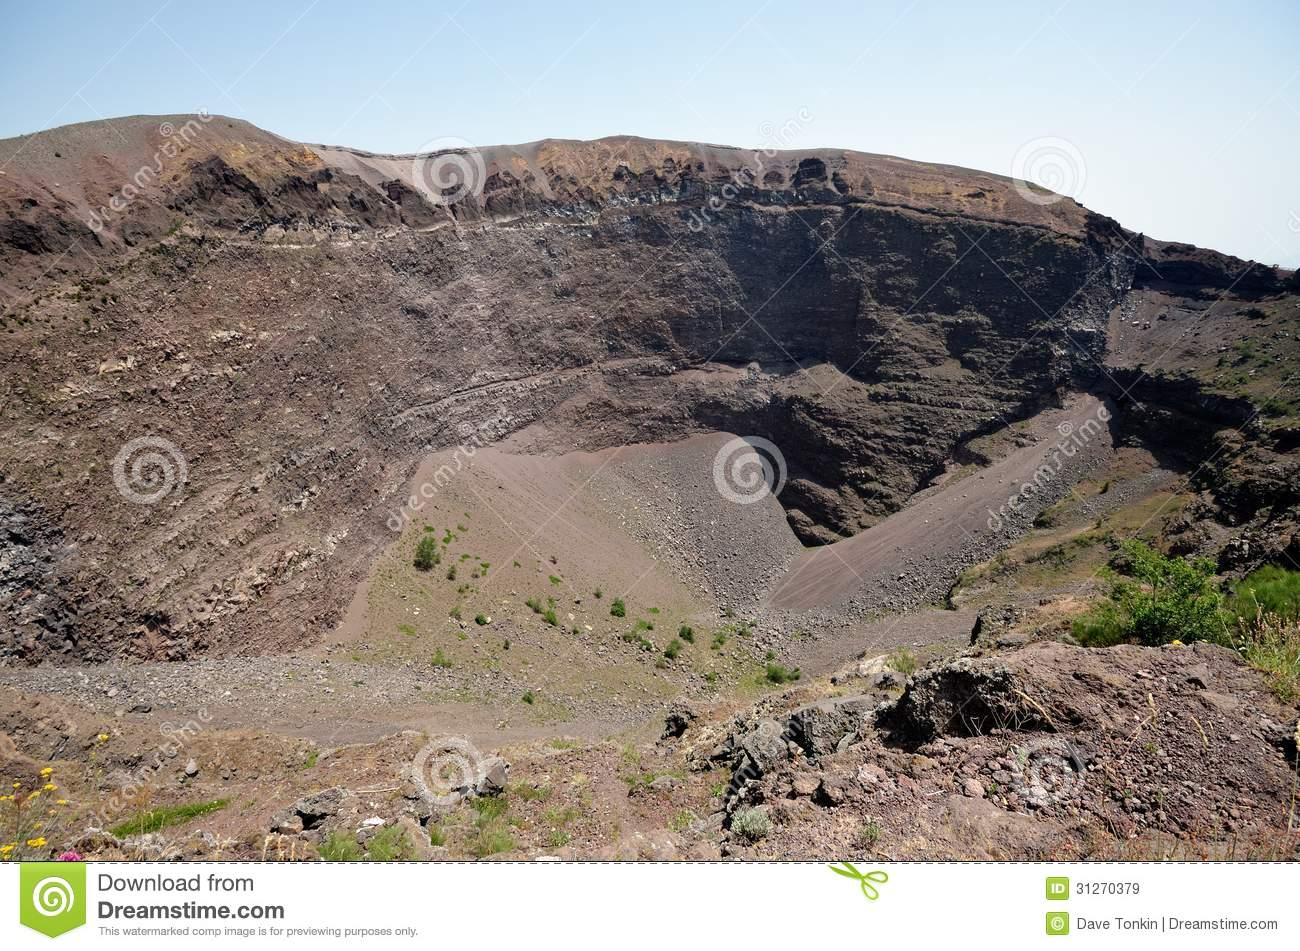 mount vesuvius a stratovolcano near the The most complex and well-known of the three different volcano types, the stratovolcano or  washington and mount vesuvius  sciencingcom/composite-volcano.